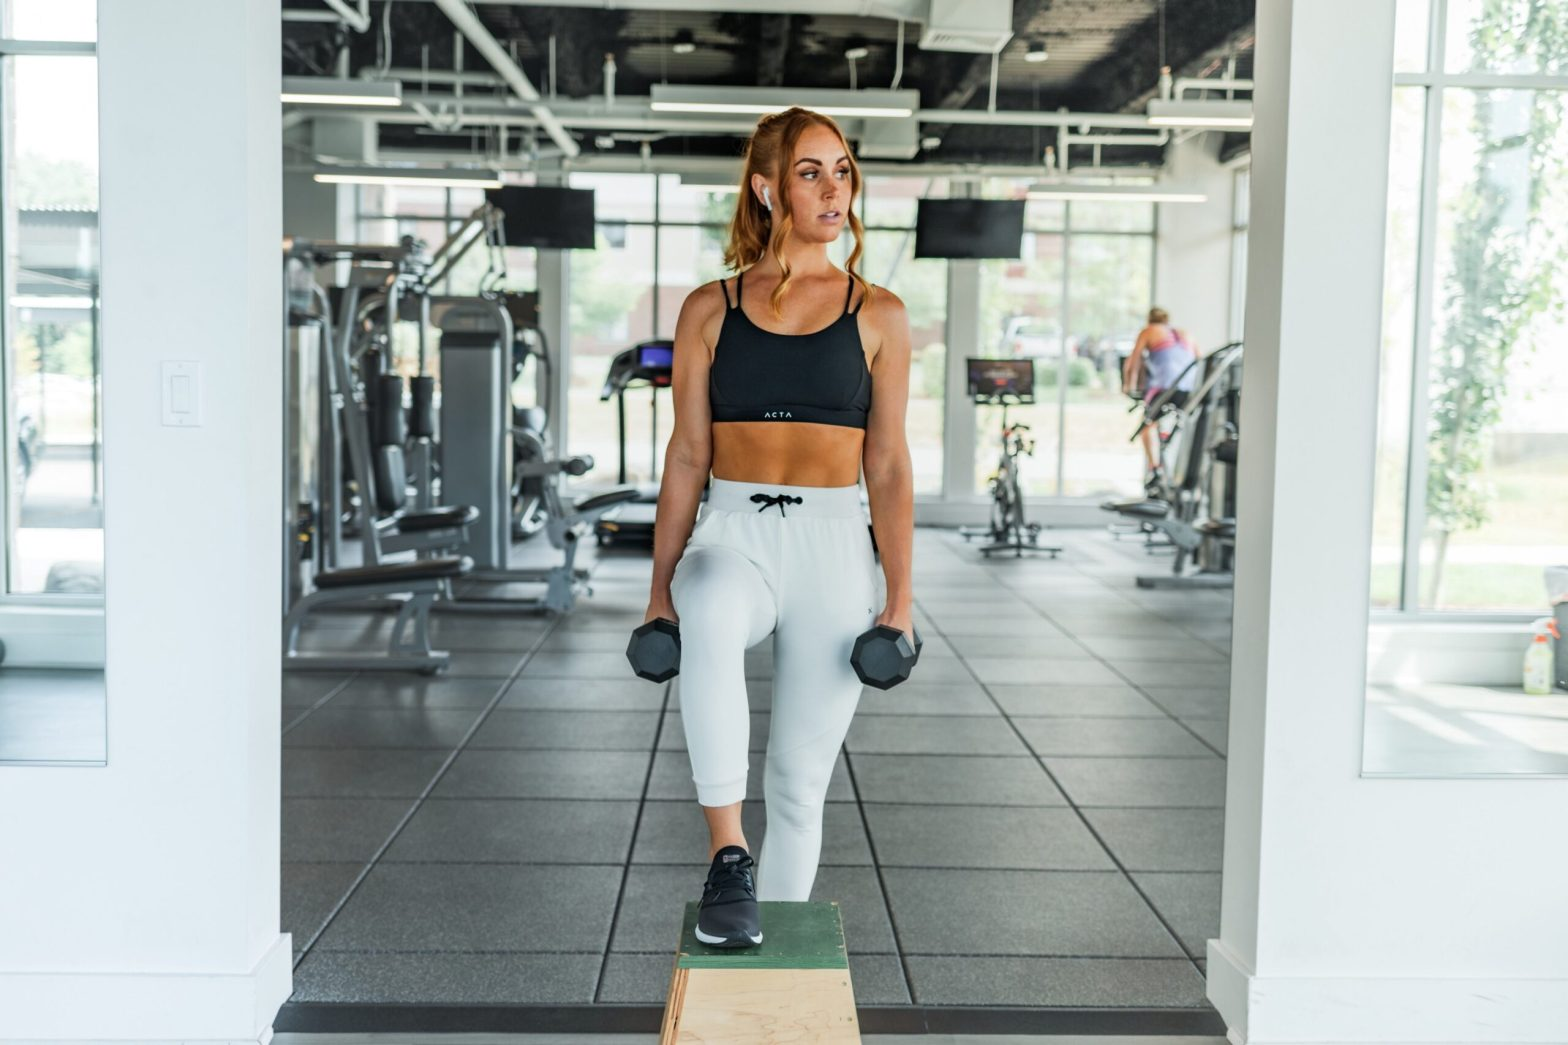 beginner person learn how to start her fitness journey